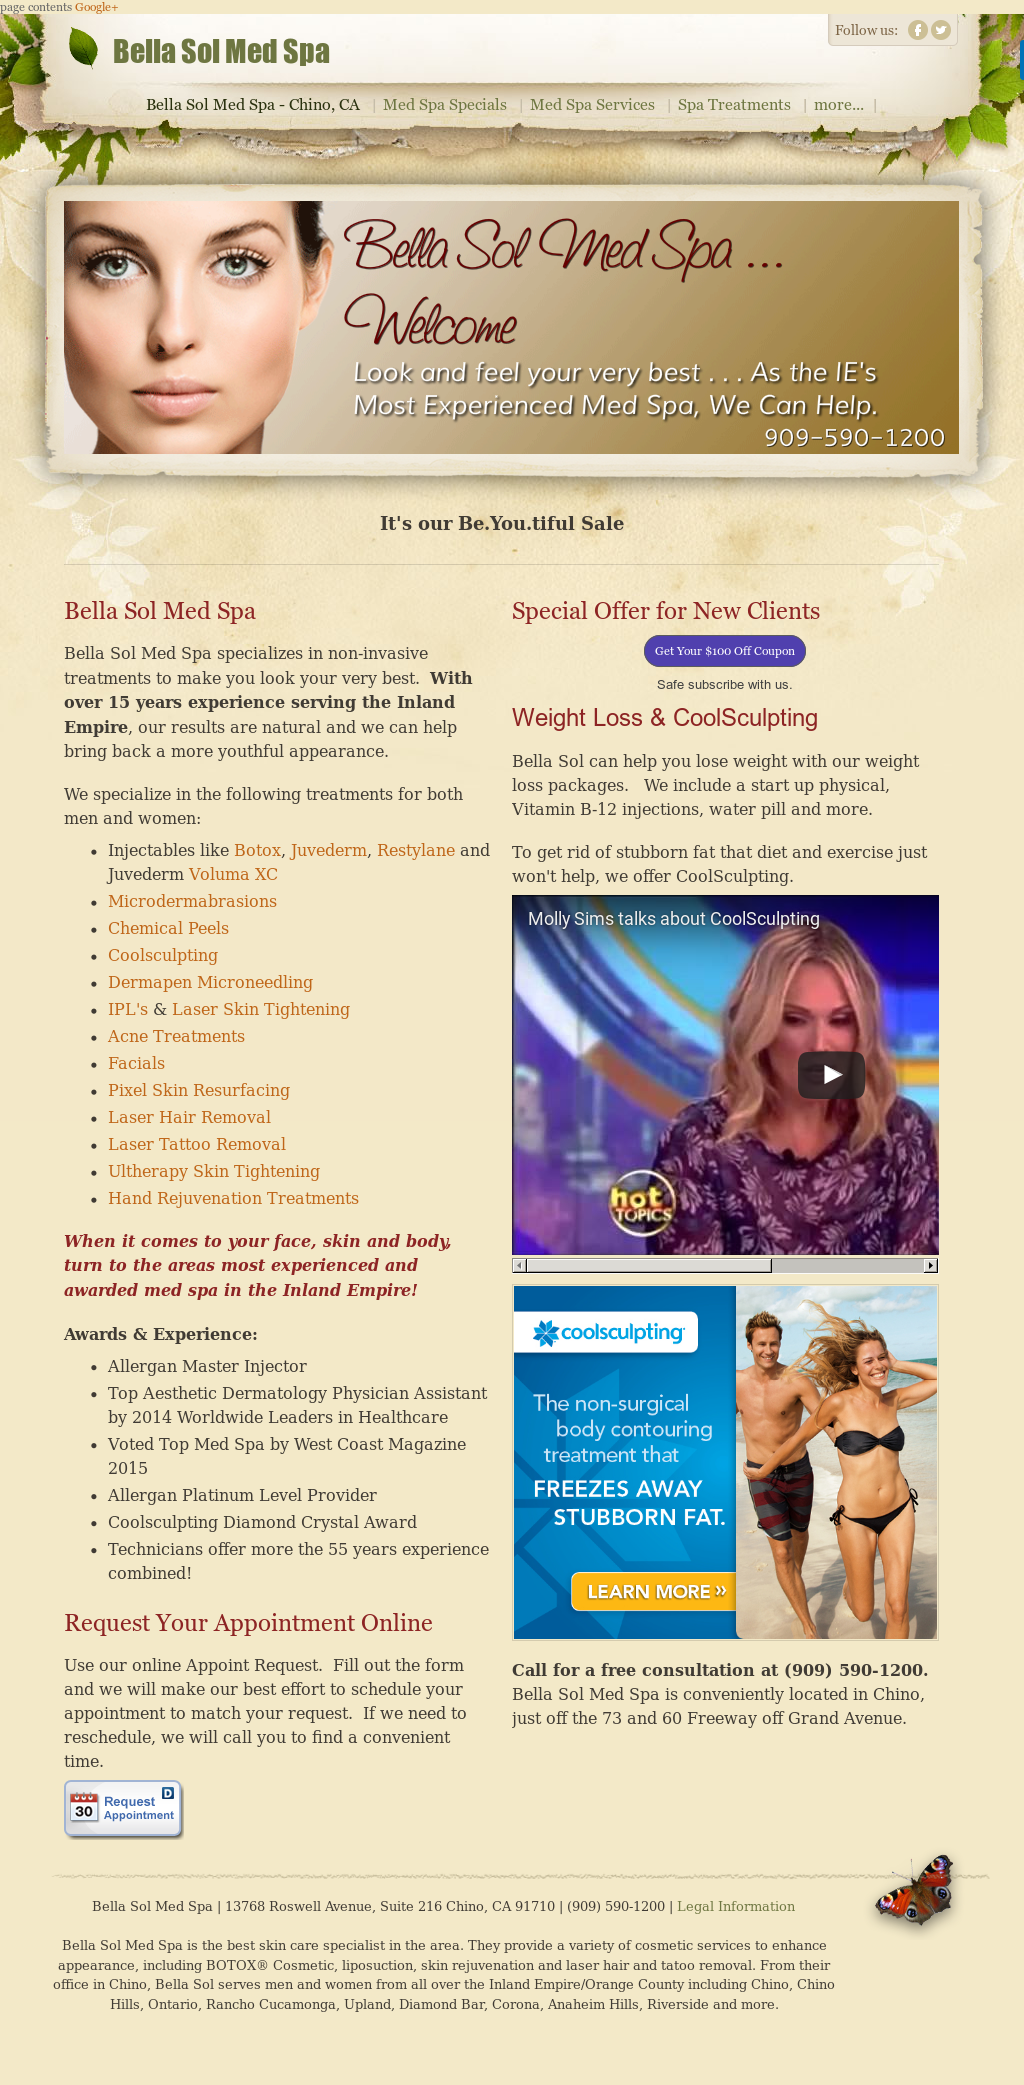 Weight loss skin tightening surgery image 1